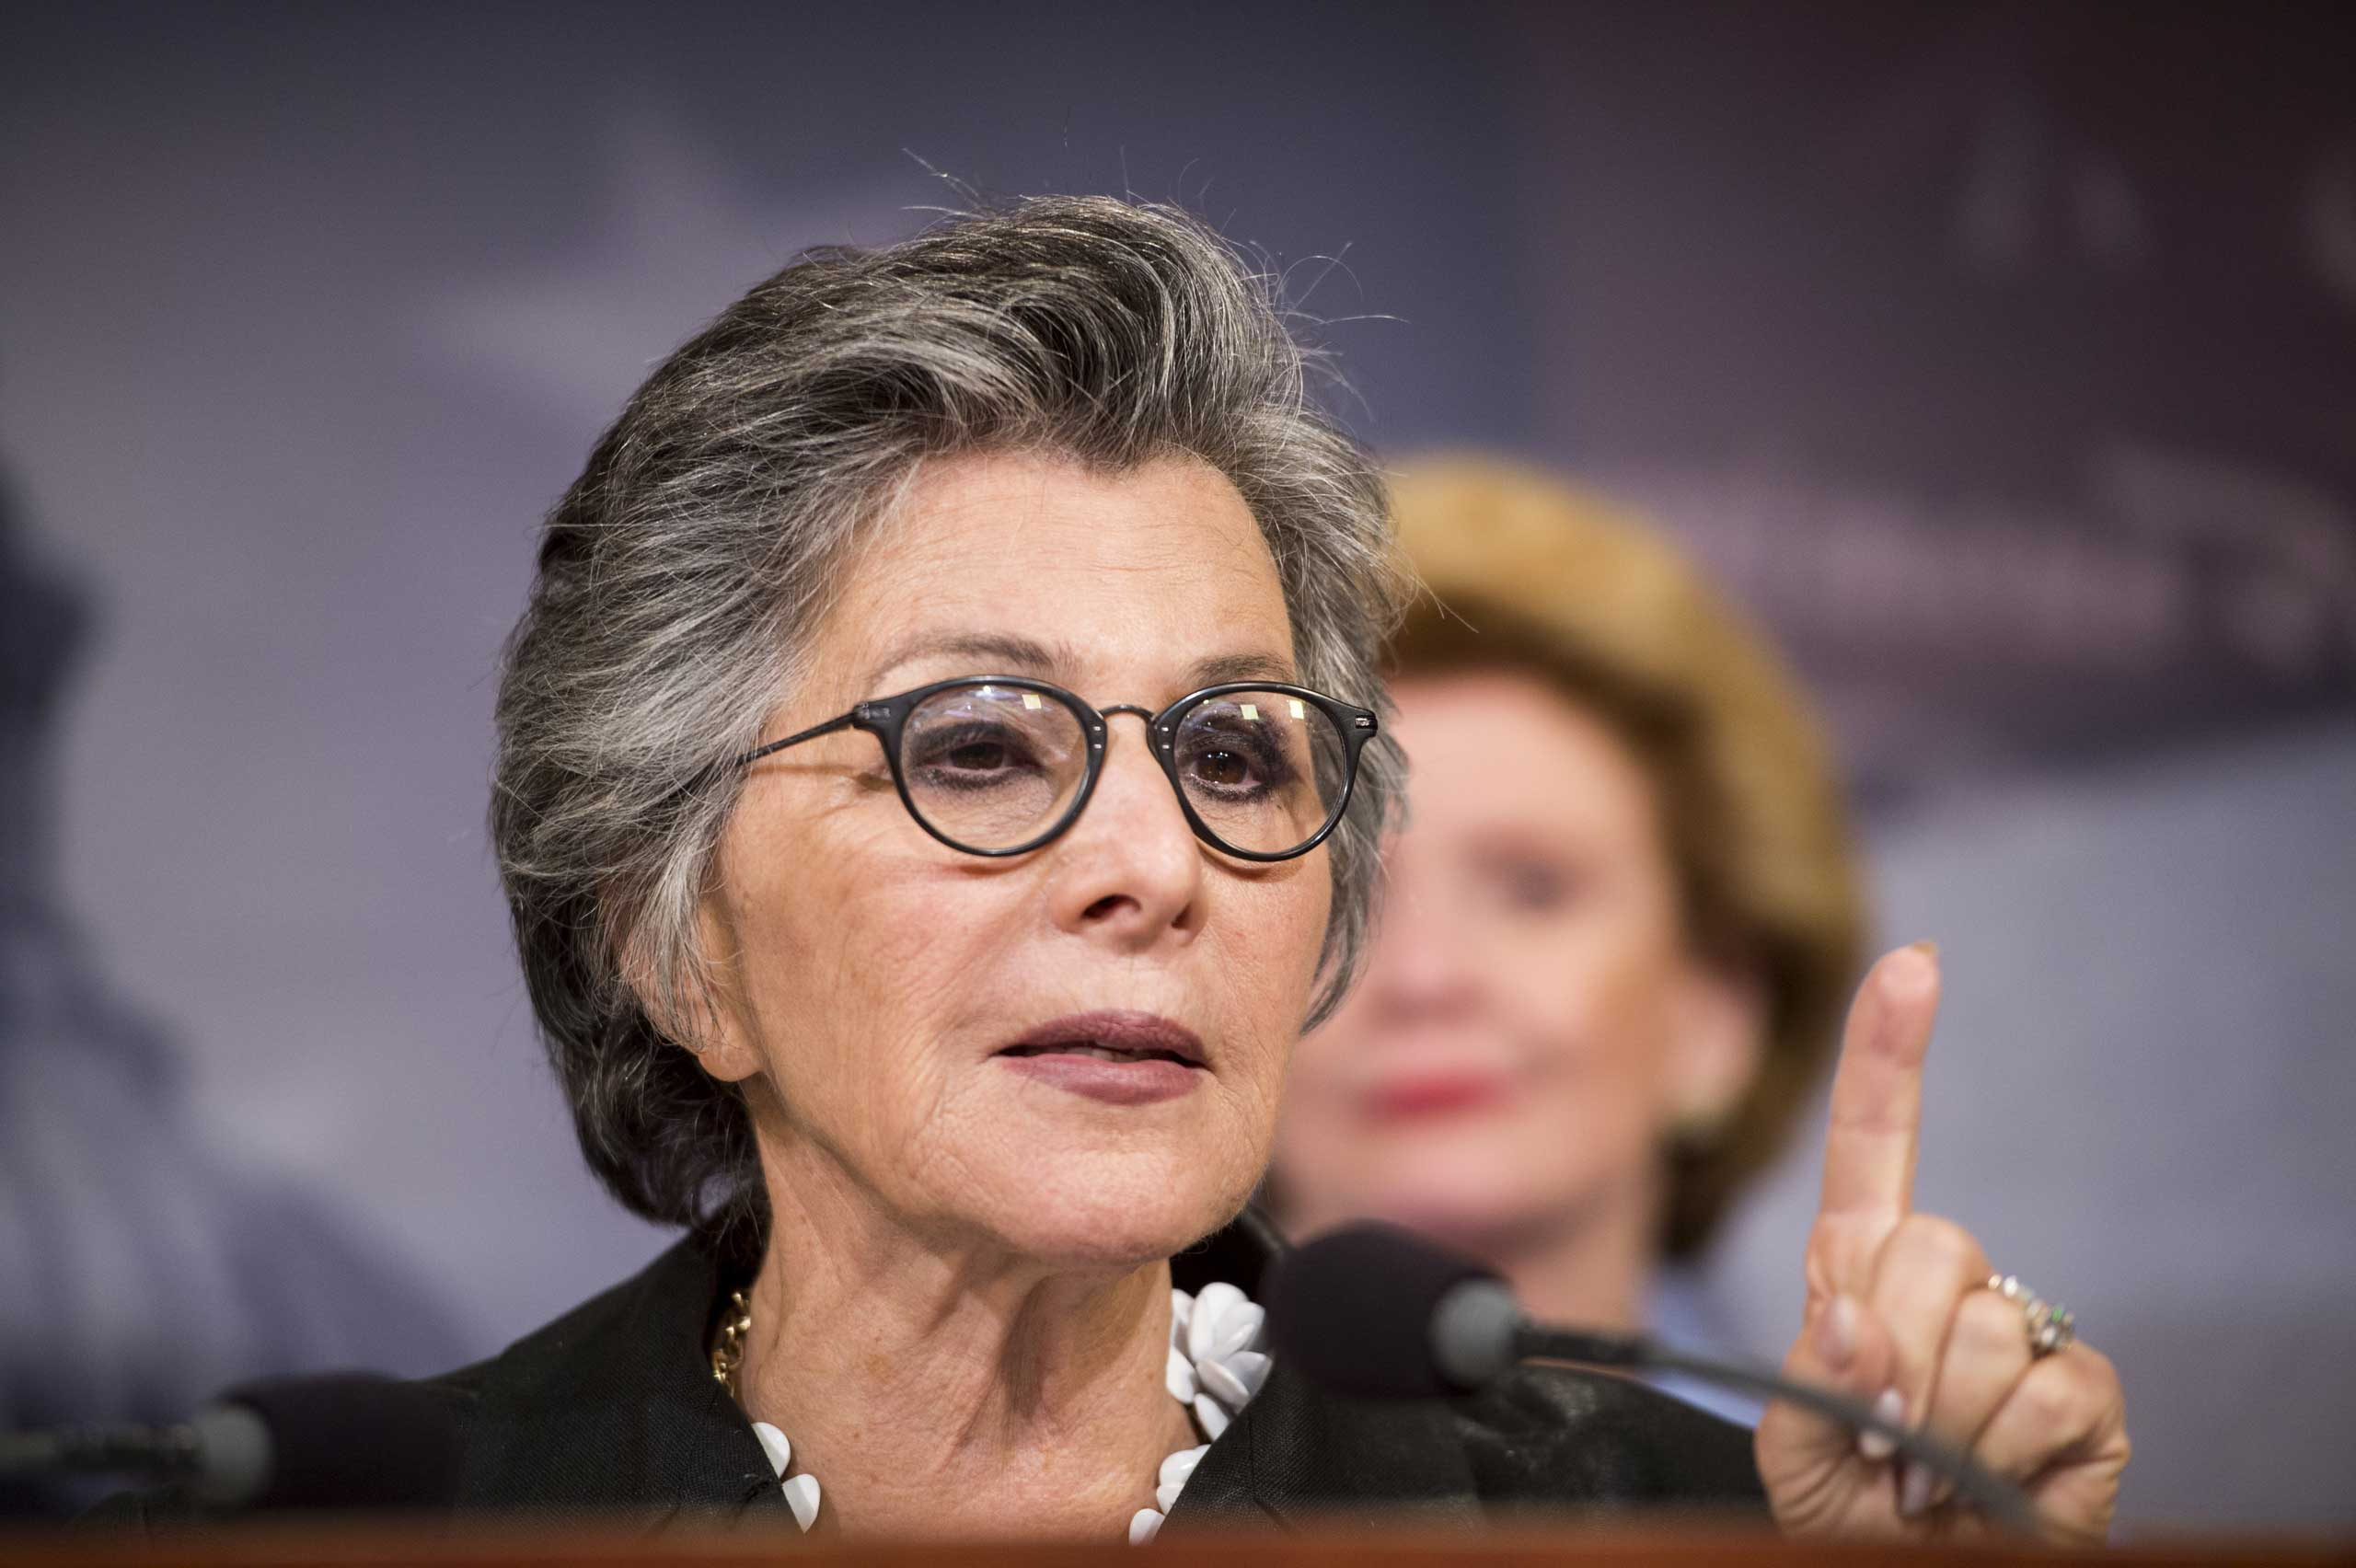 Sen. Barbara Boxer, D-Calif., speaks during the Senate Democrats' news conference after the Senate's vote on the  Paycheck Fairness Act  in Washington on Sept. 10, 2014.